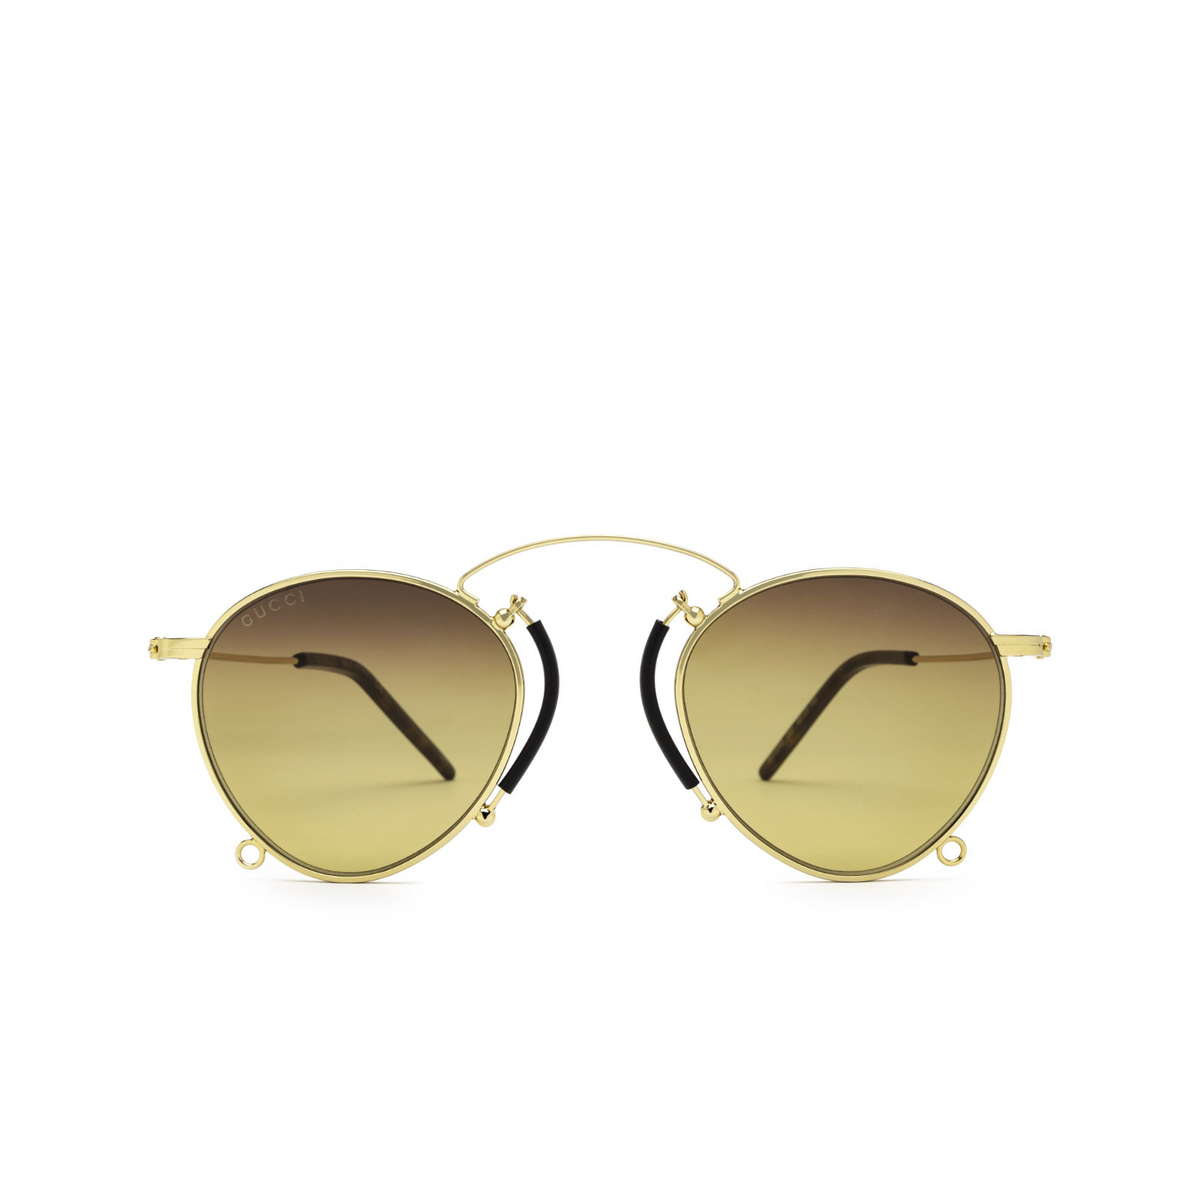 Gucci® Round Sunglasses: GG1034S color Gold 003 - front view.